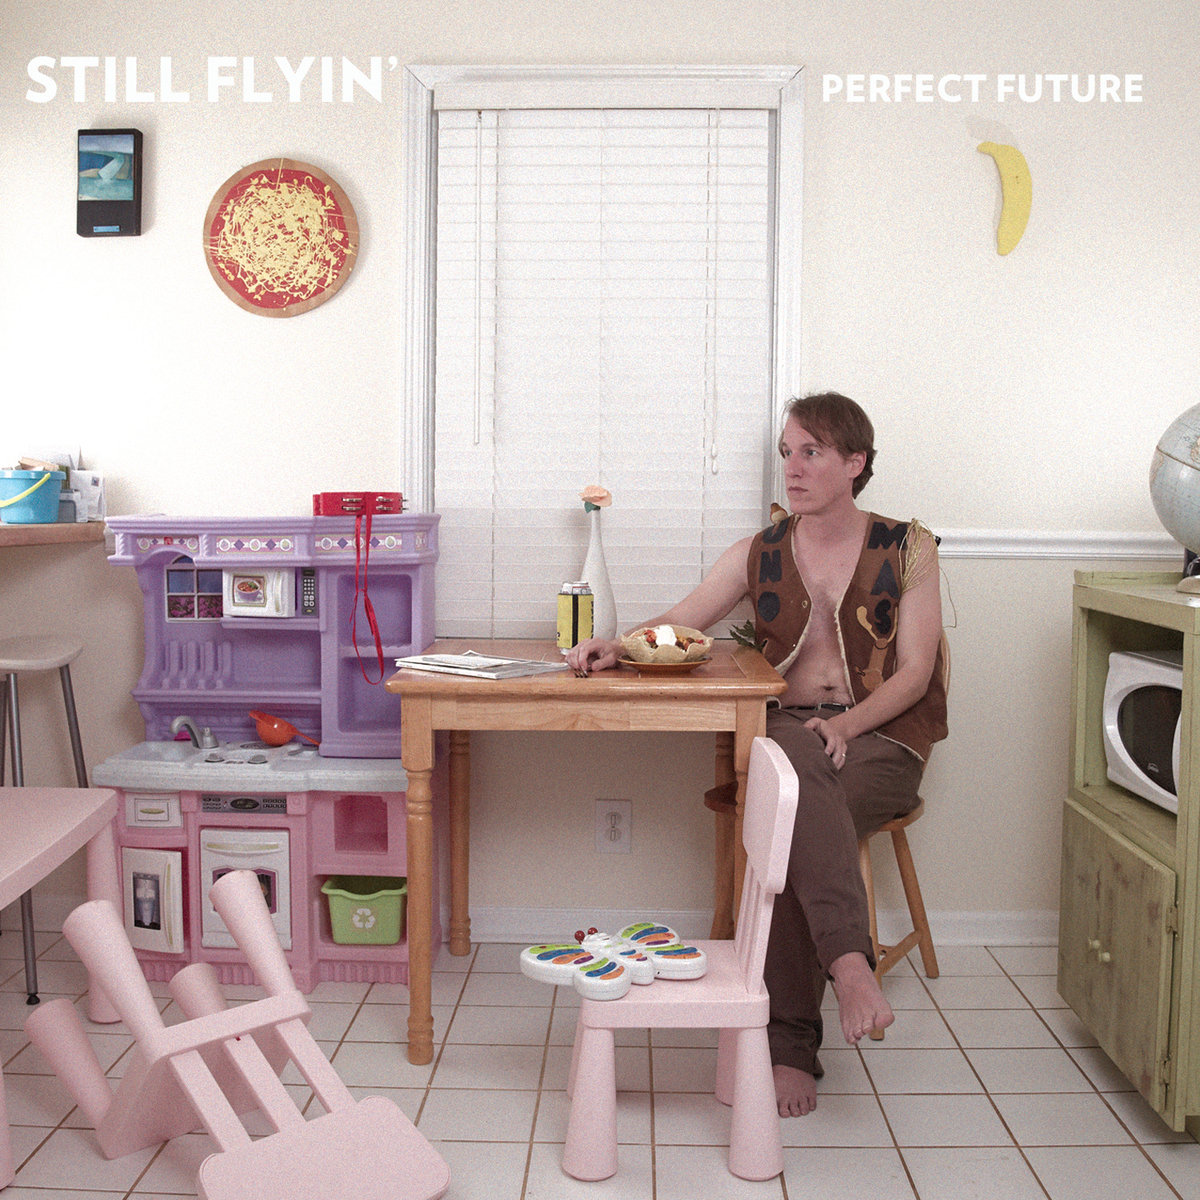 Still Flyin' - Perfect Future